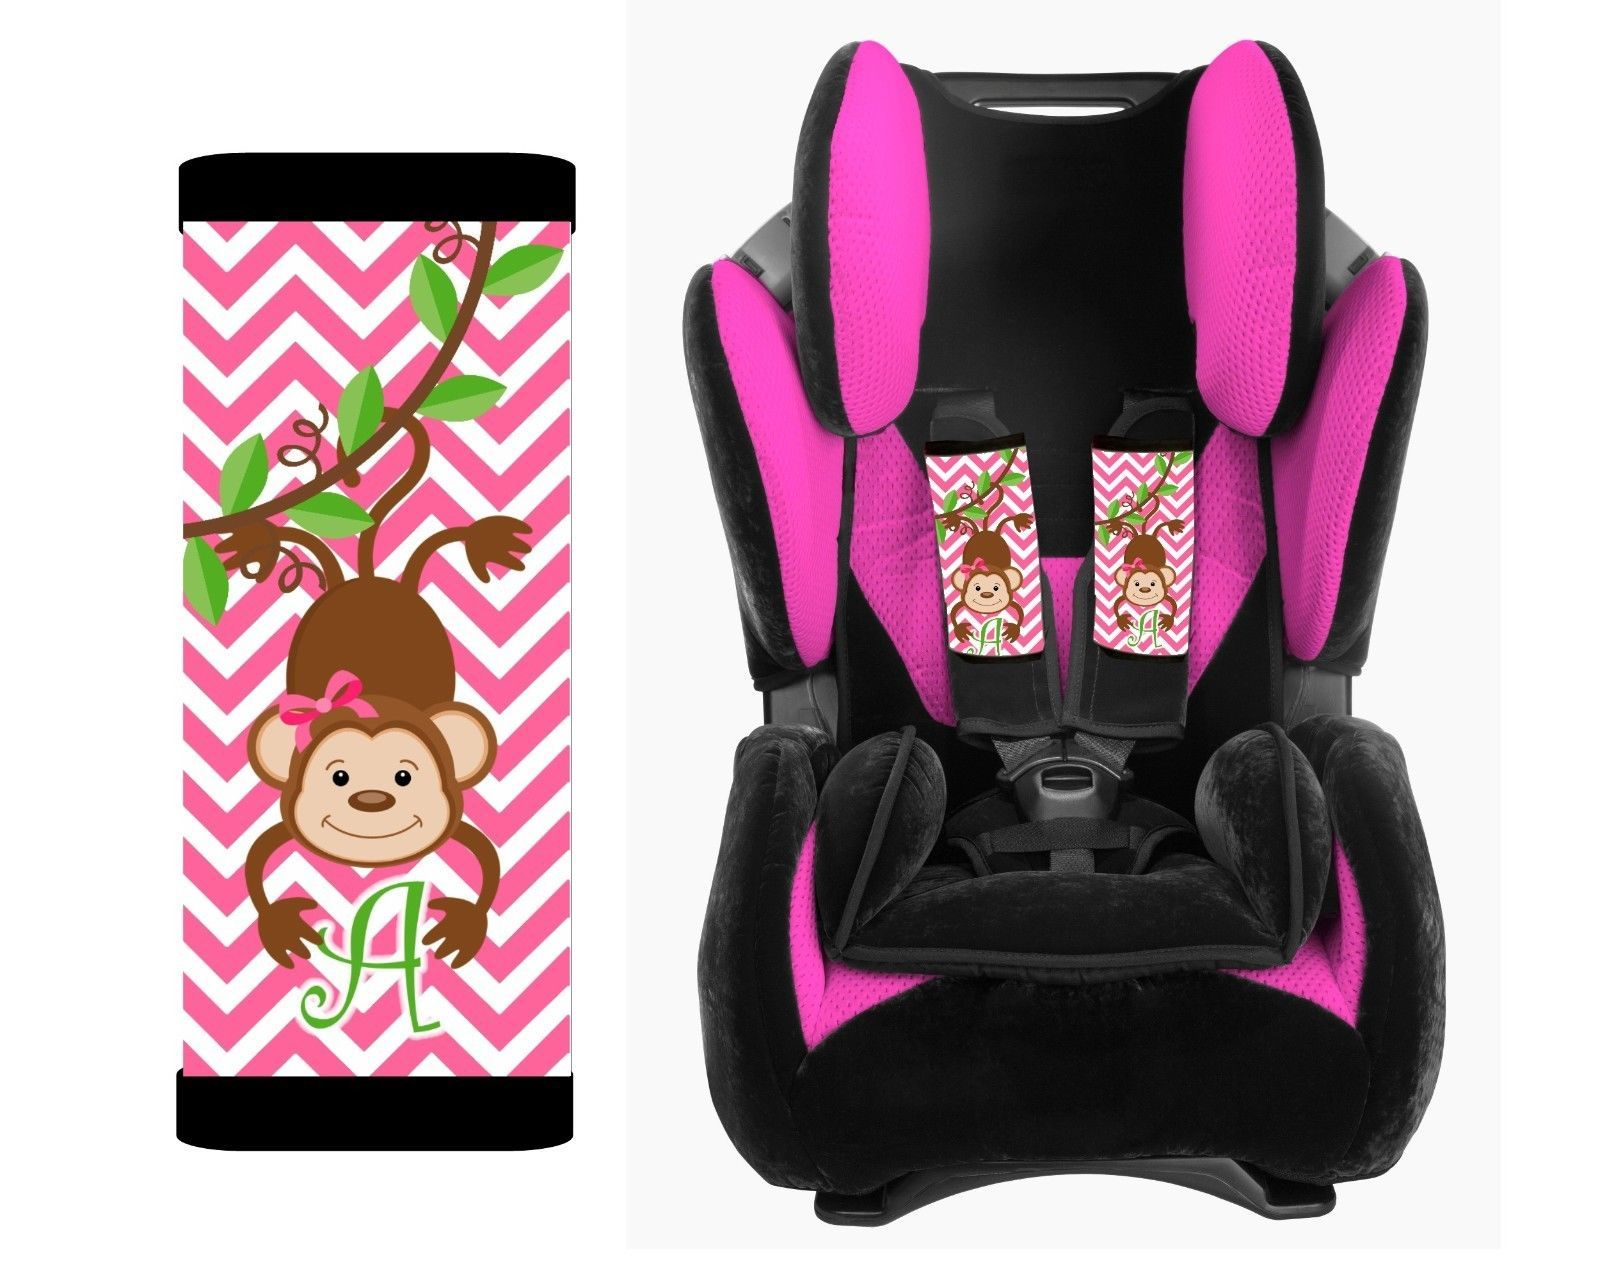 PERSONALIZED BABY TODDLER CAR SEAT STRAP COVERS CUTE MONKEY PINK CHEVRON